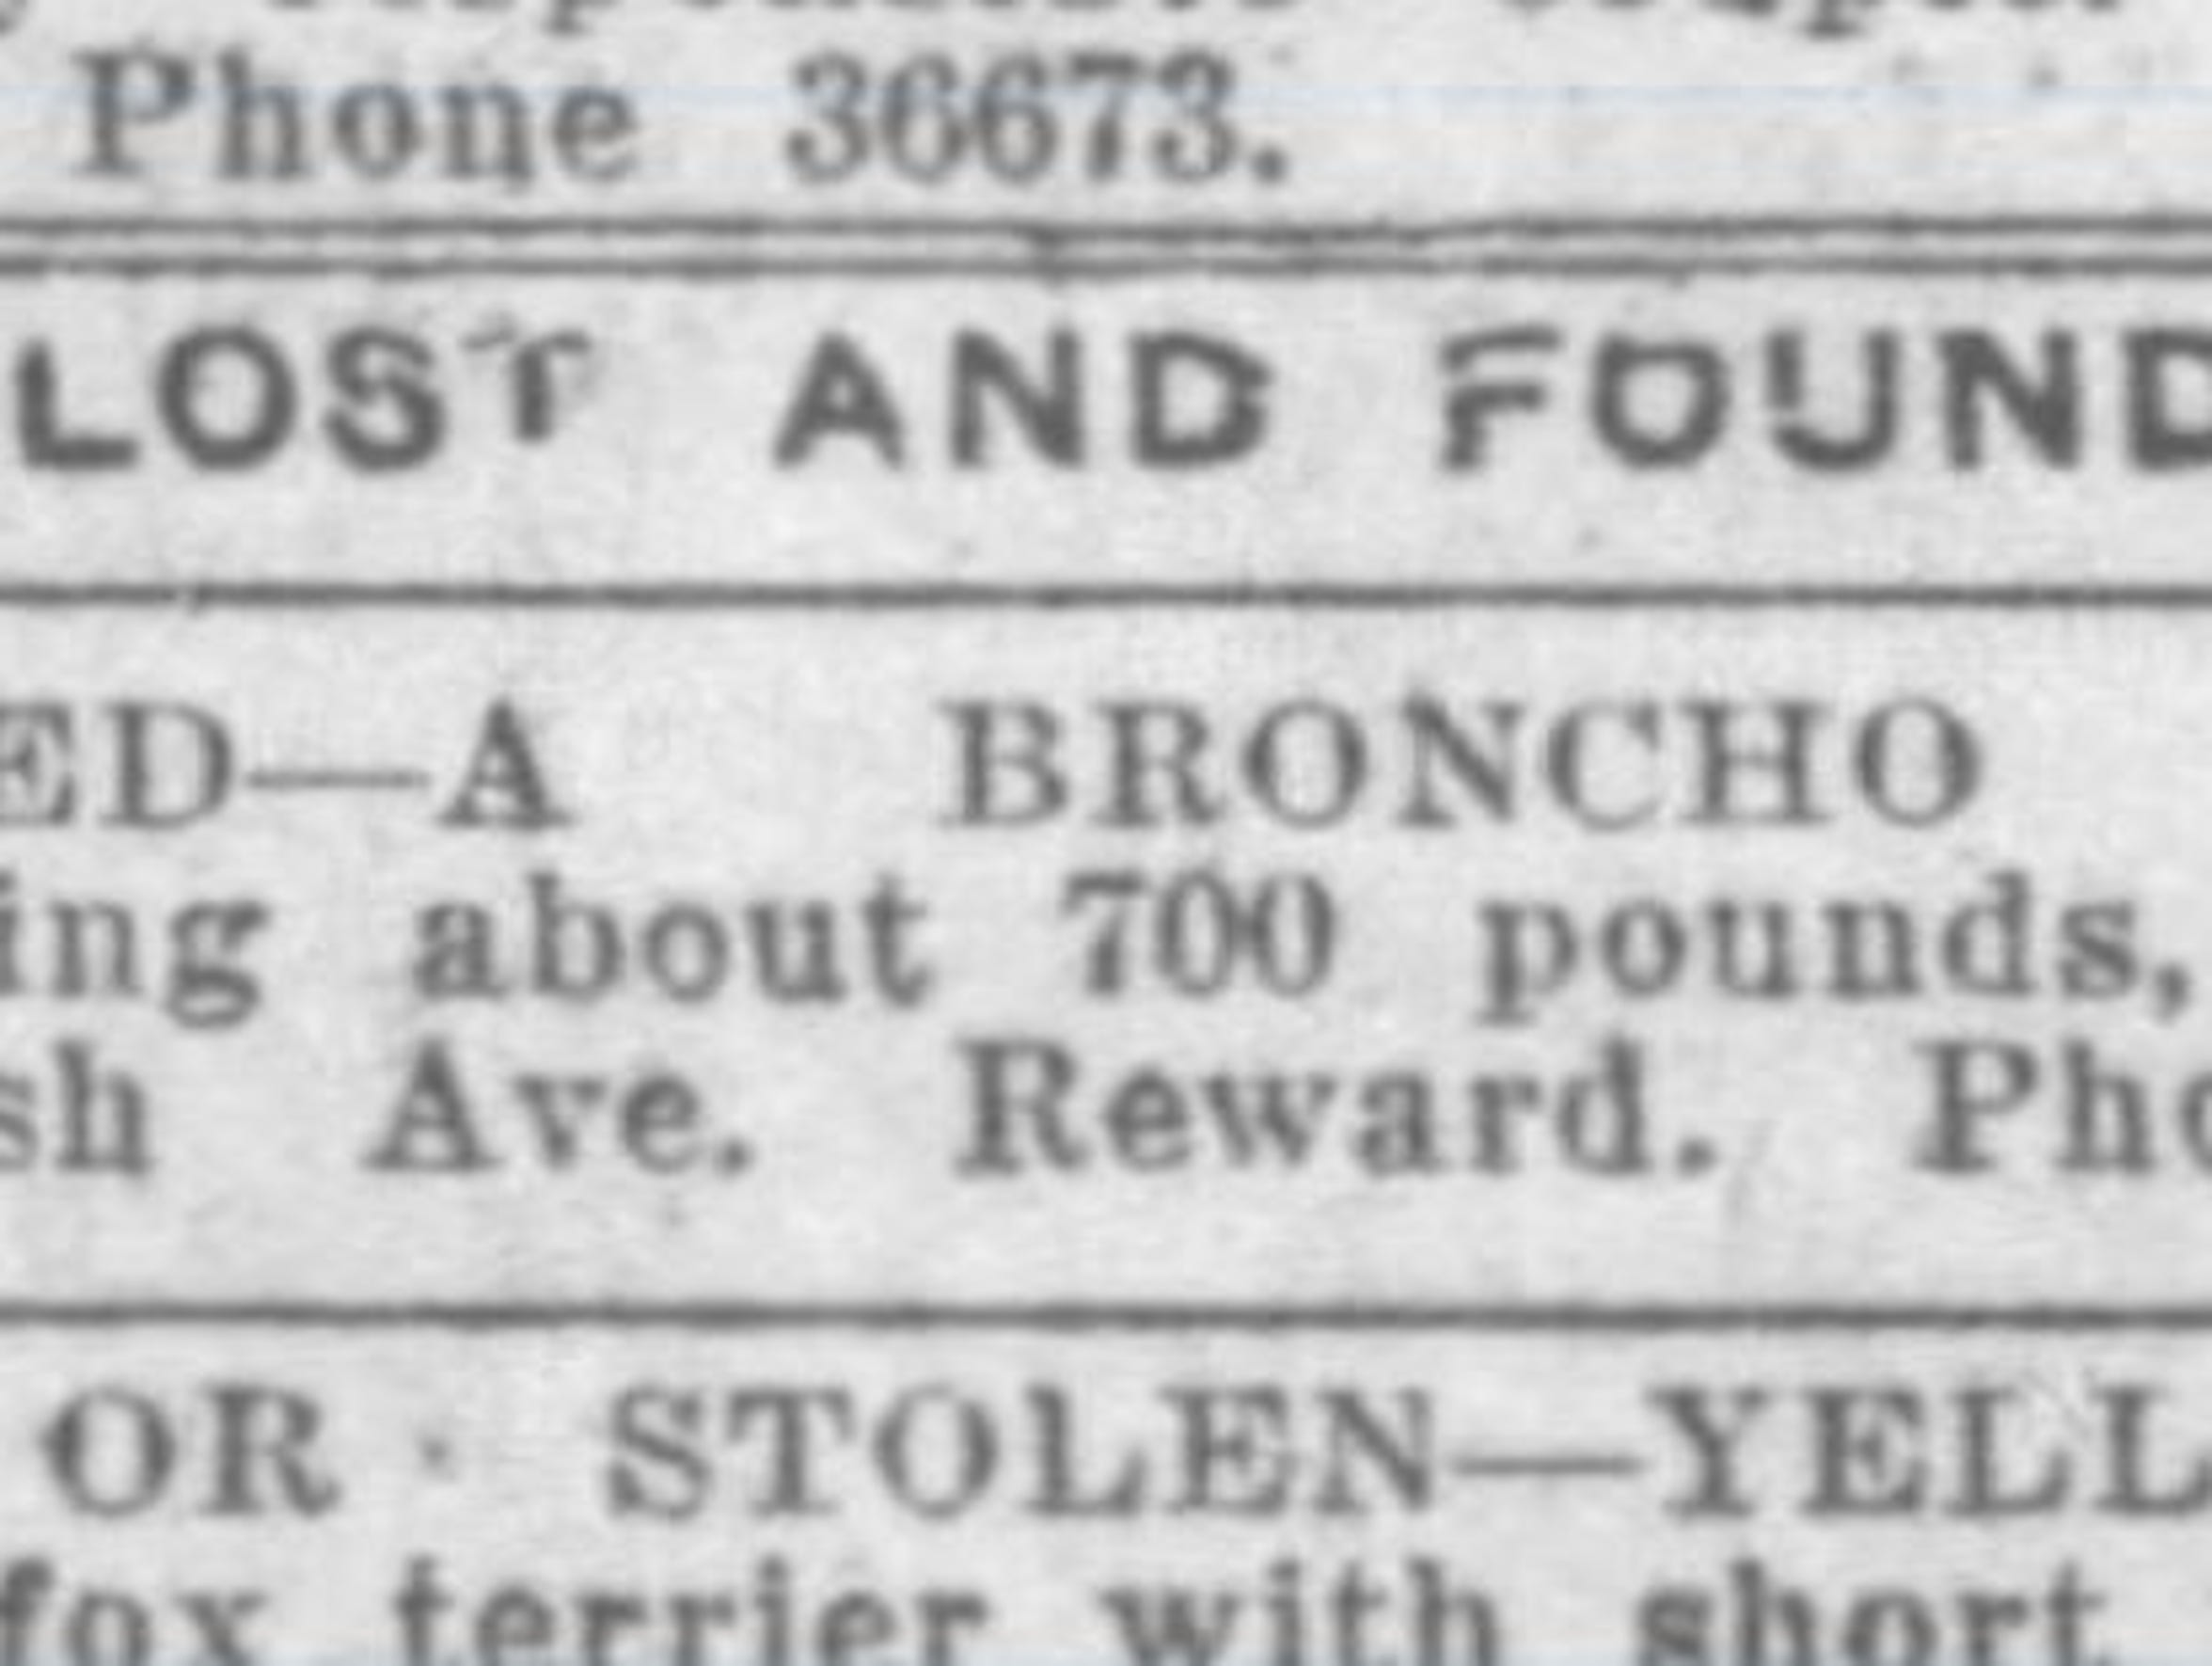 This lost and found ad, from the March 24, 1920 Journal